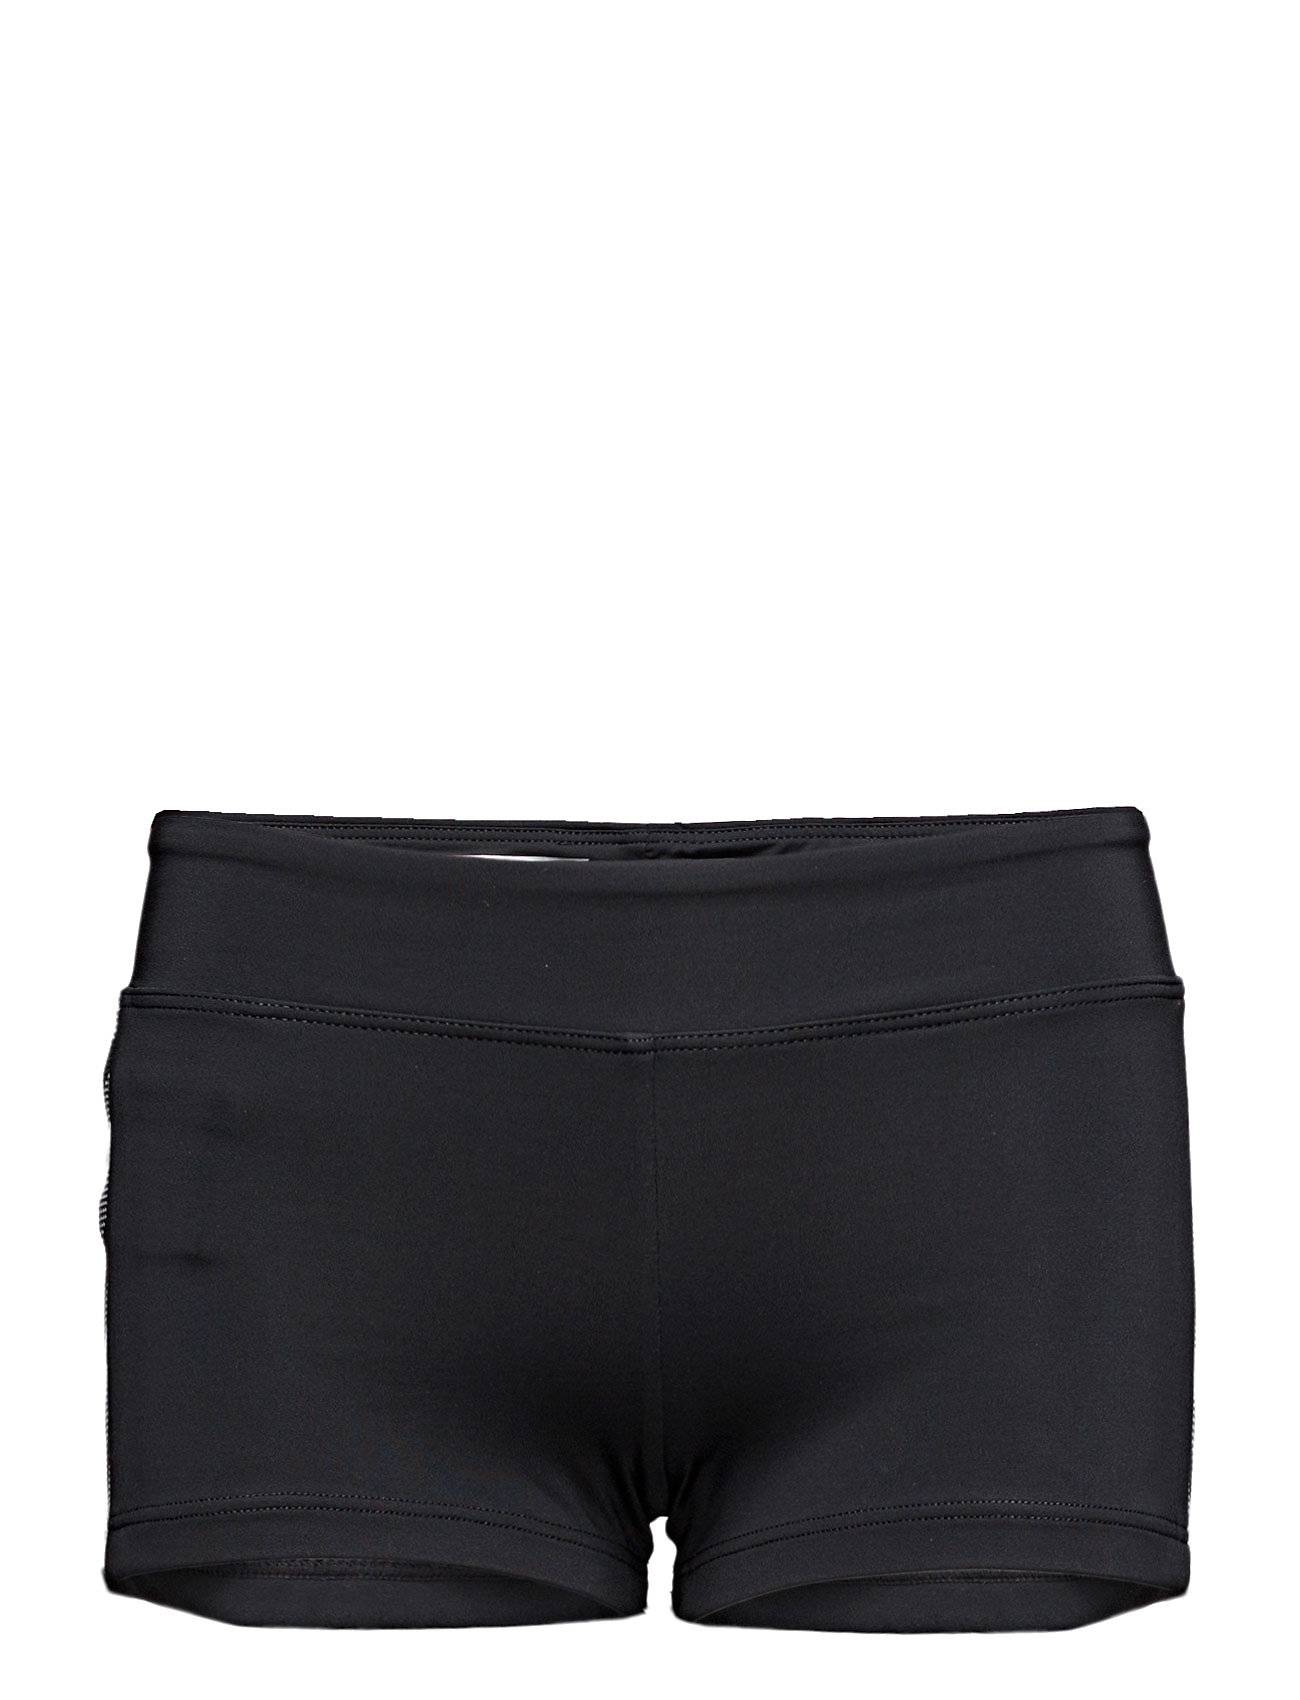 Seafolly Horizon Luxe Athletic Short